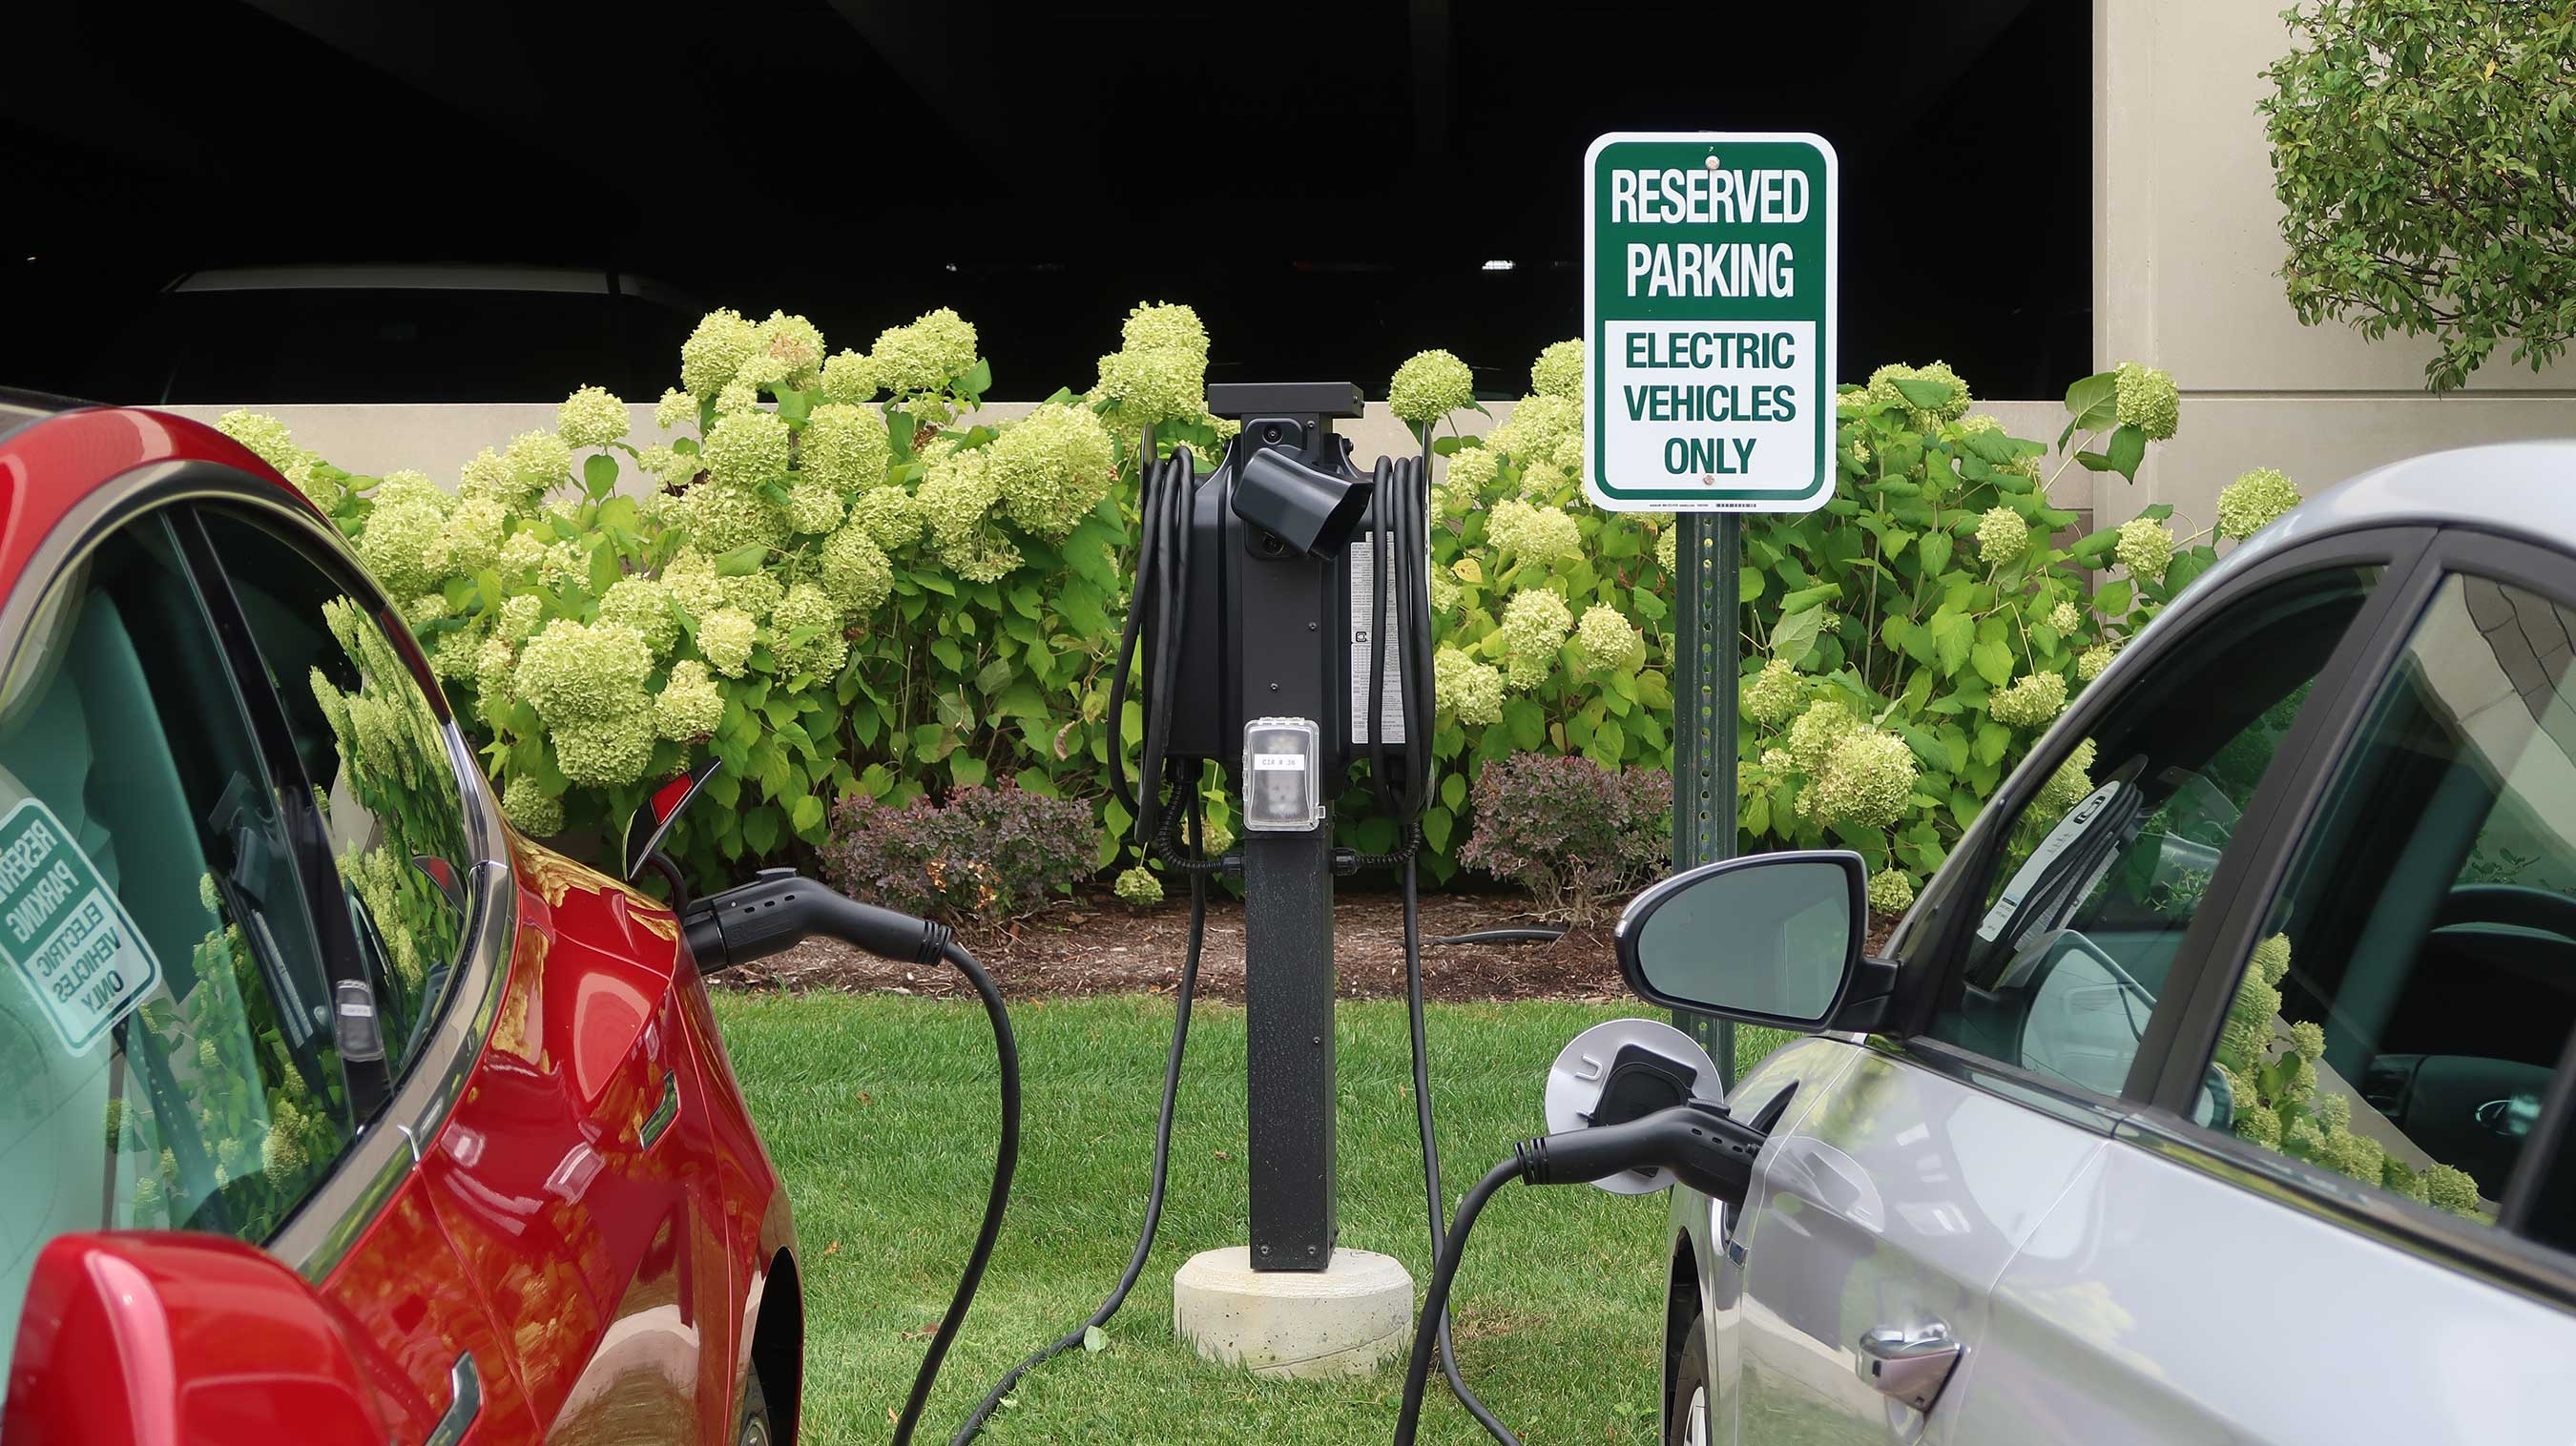 The number of electric vehicles is expected to accelerate from the current 1 million to 19 million by 2030. Proactive investment in the electric grid is needed to handle this growing demand.